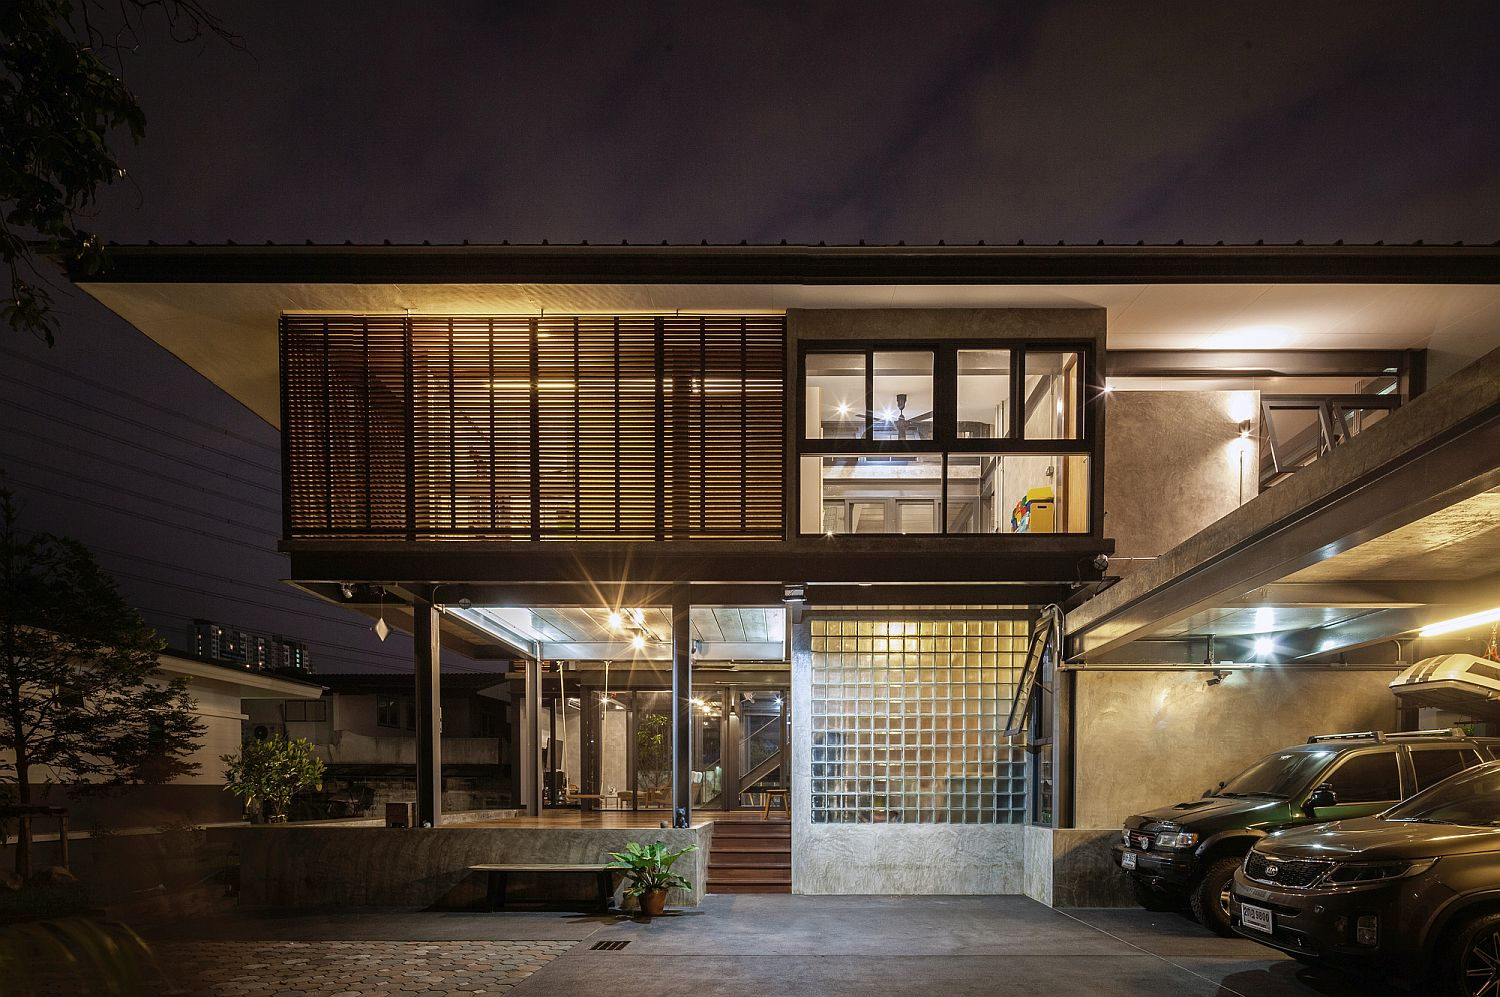 House 713 in Bangkok after sunset